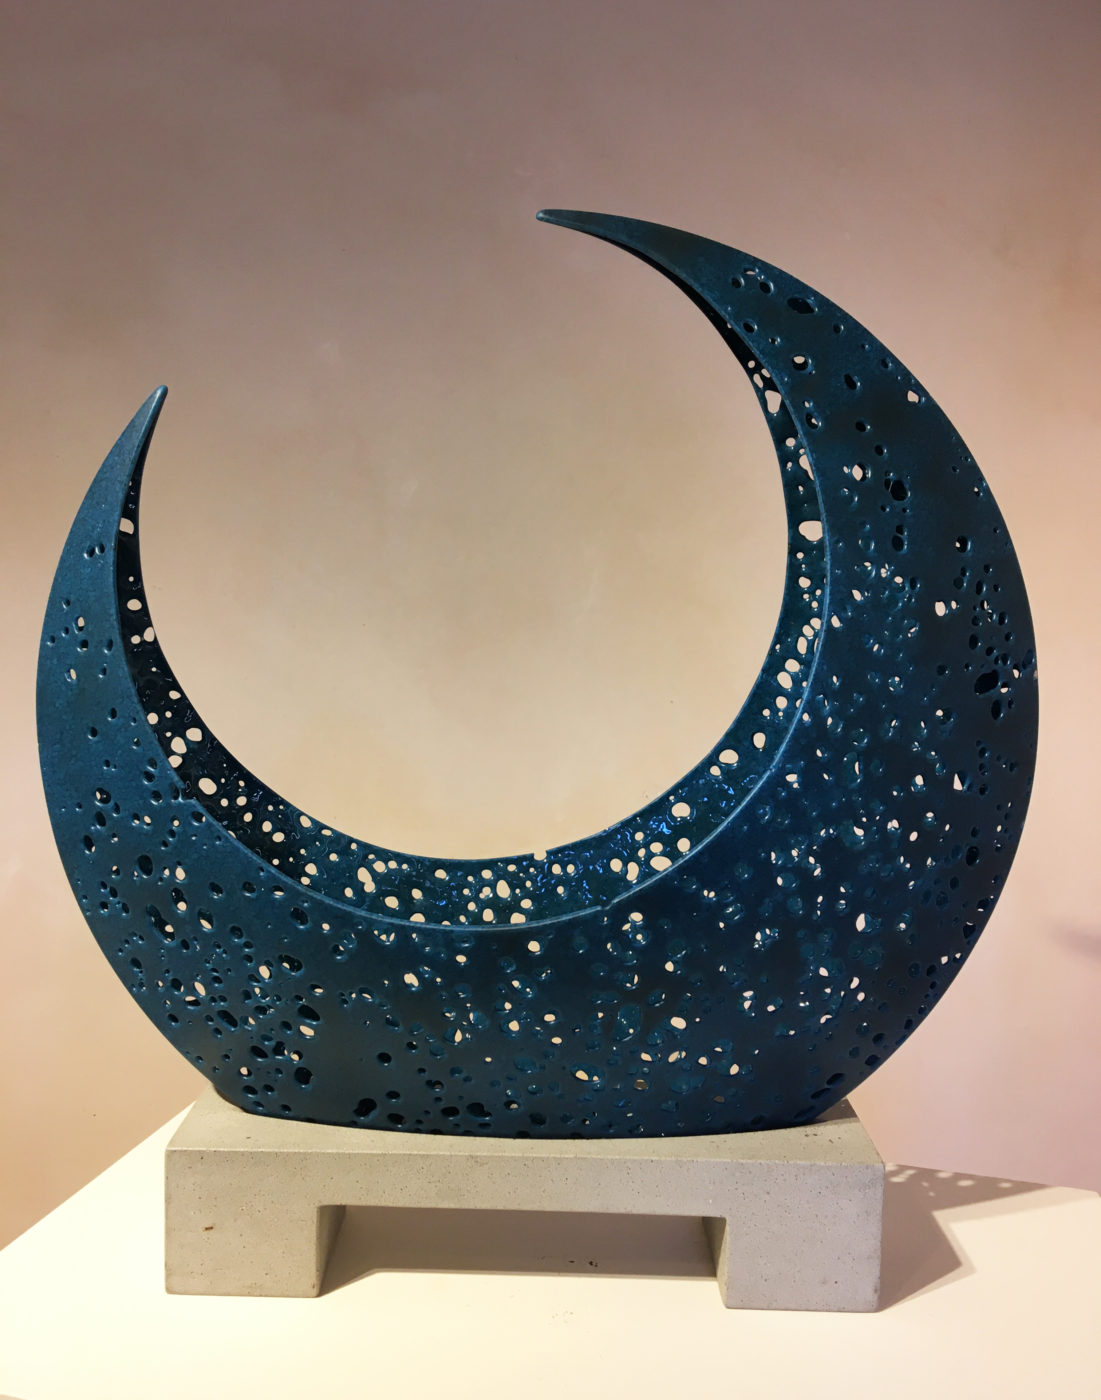 midnight blue glass sculpture